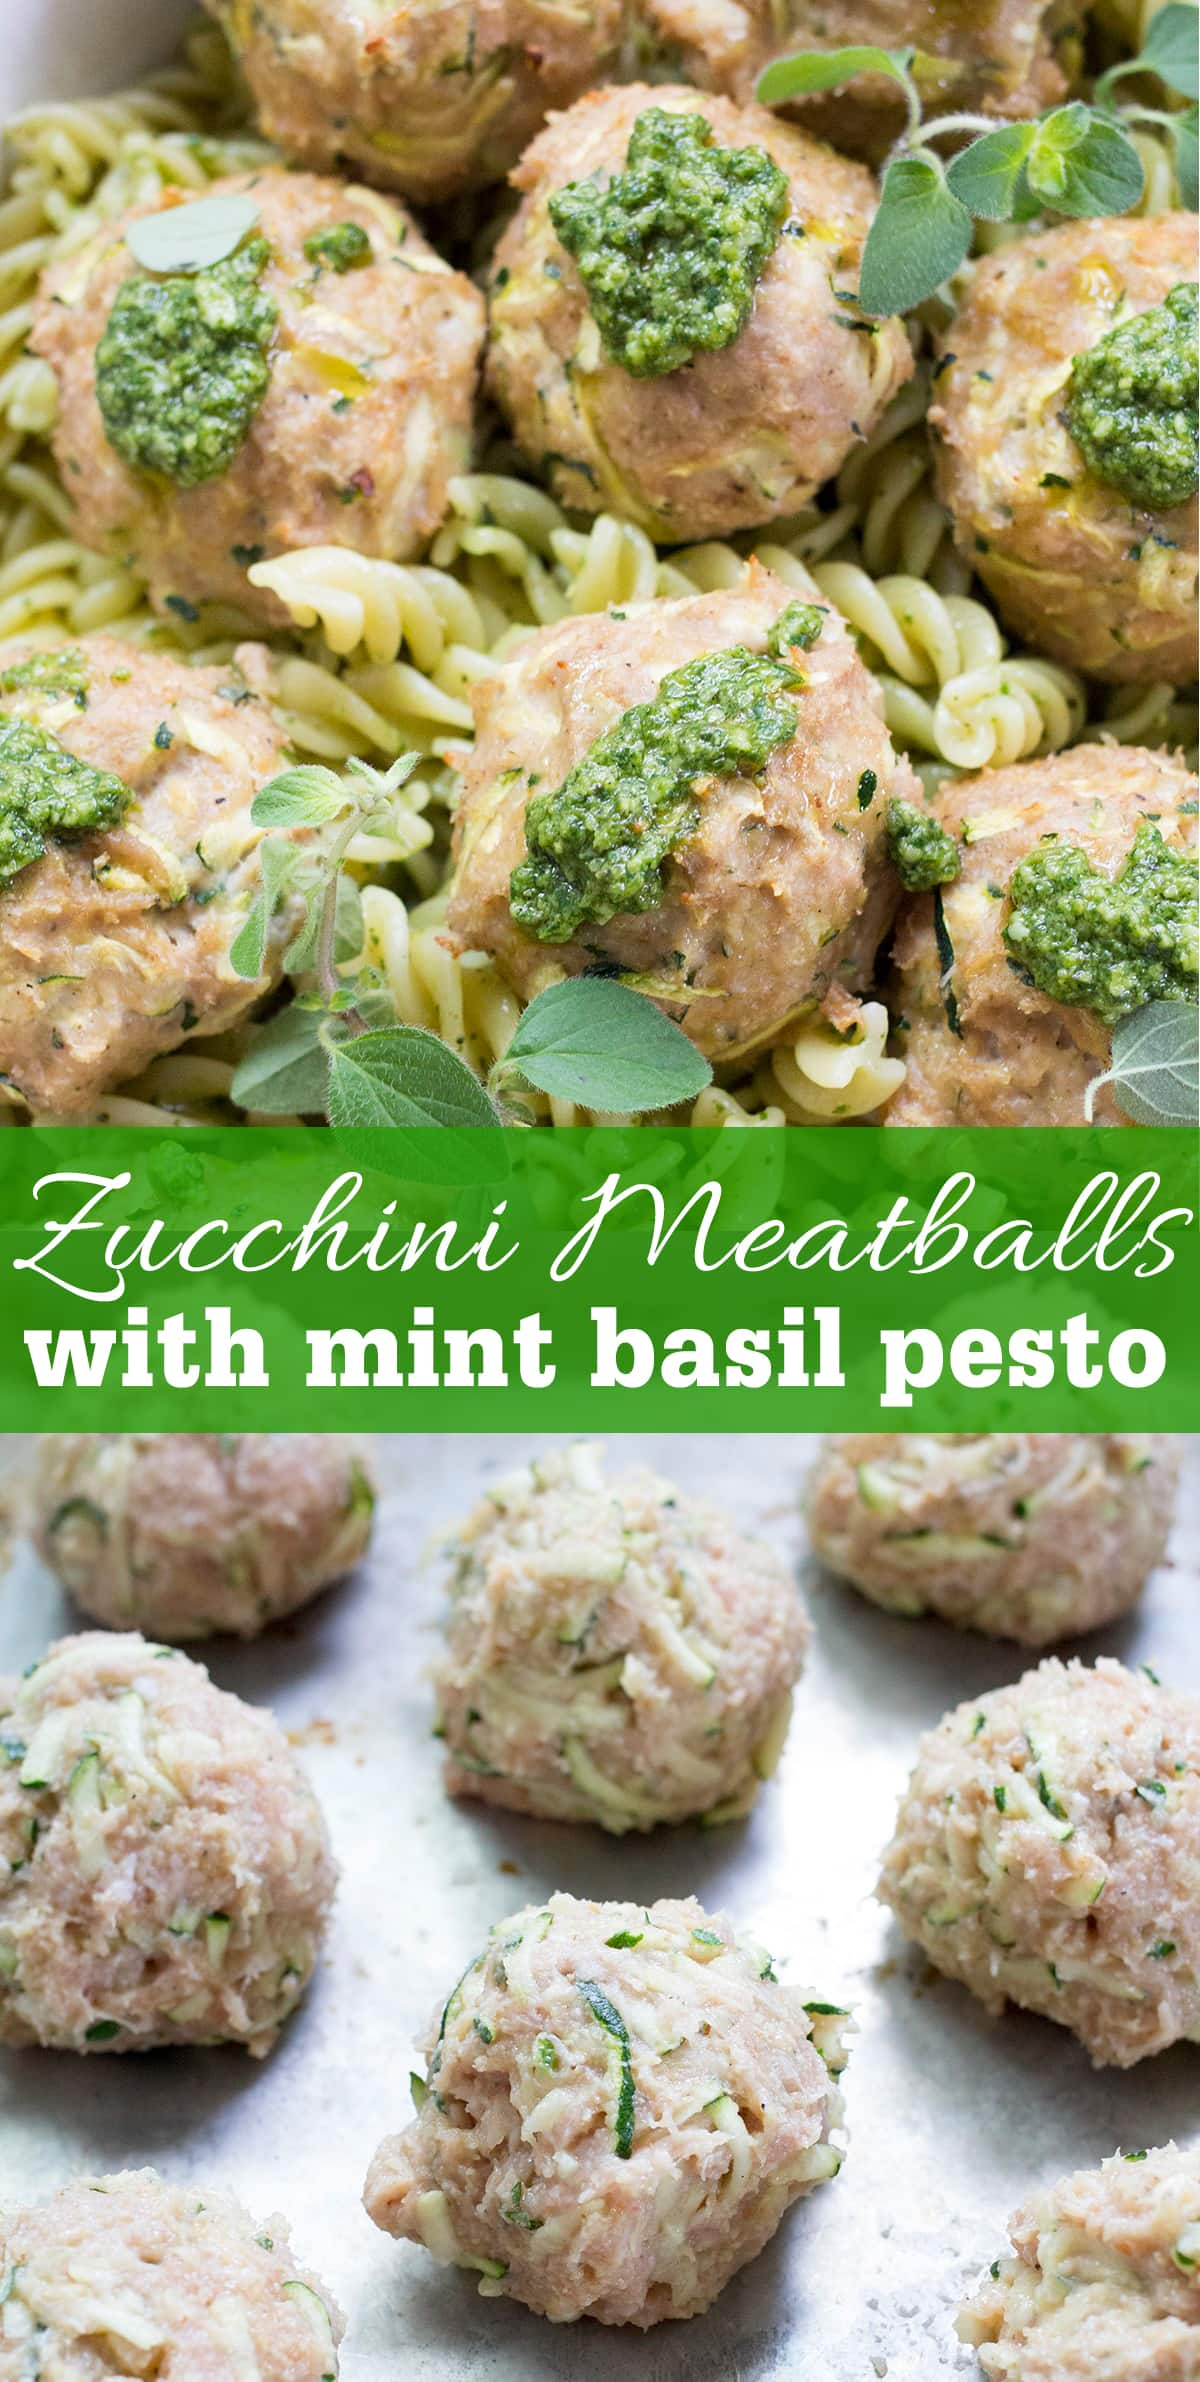 Turkey meatballs made with shredded zucchini and topped with mint basil pesto are a great family dinner recipe to get hidden veggies on the table! Perfect for serving over pasta.